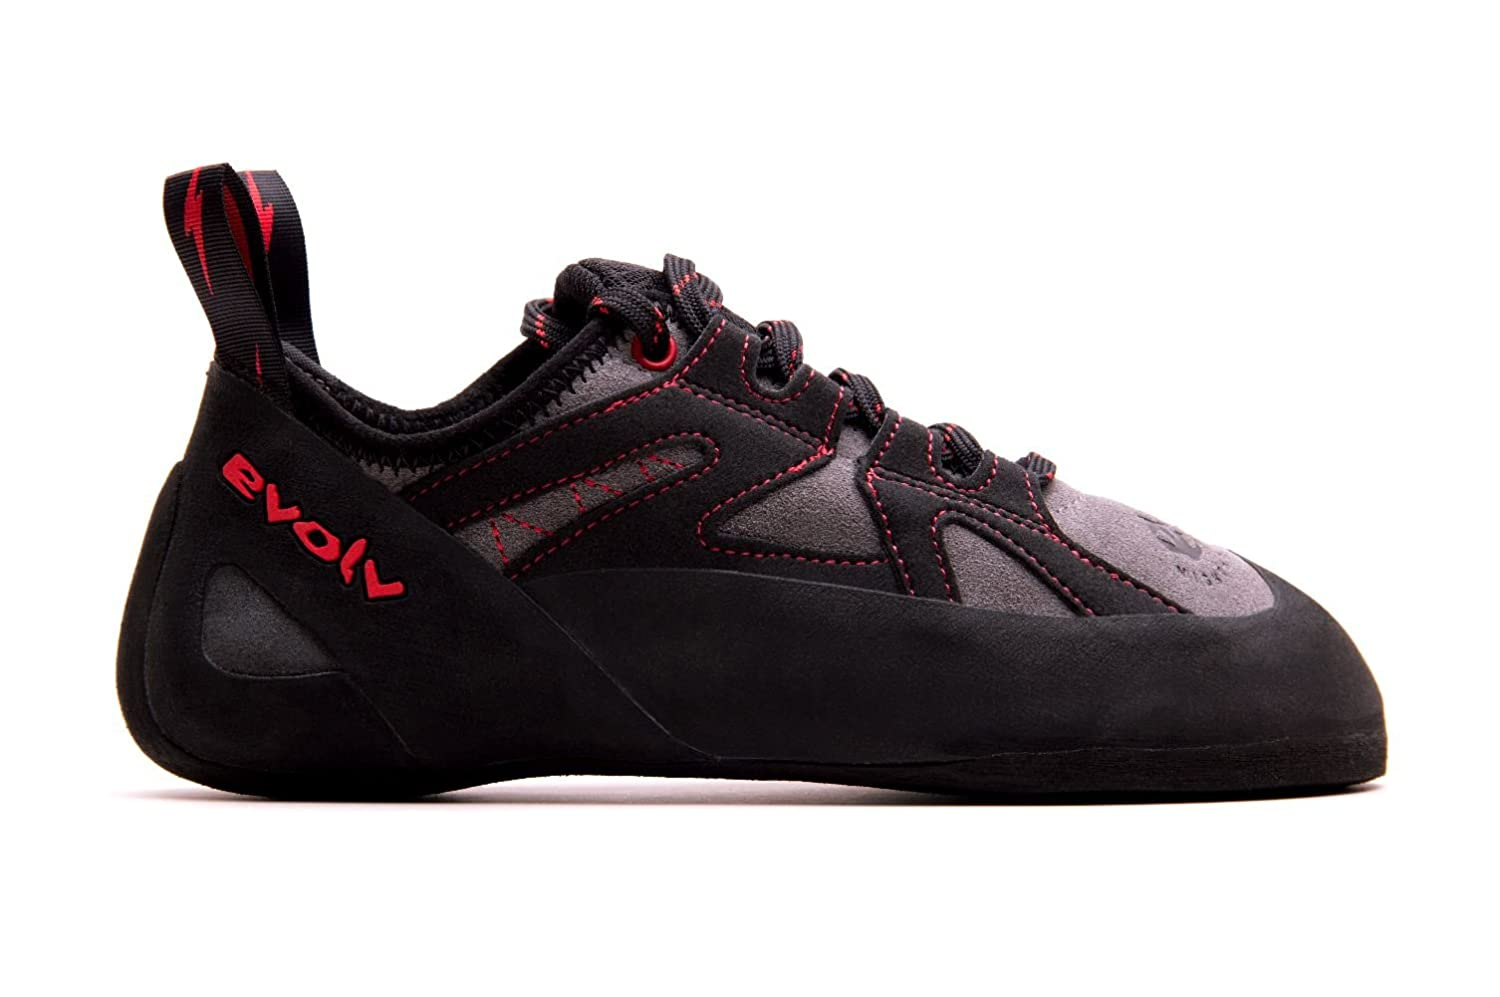 Evolv Nighthawk Climbing Shoe - Men's EVL0334-65